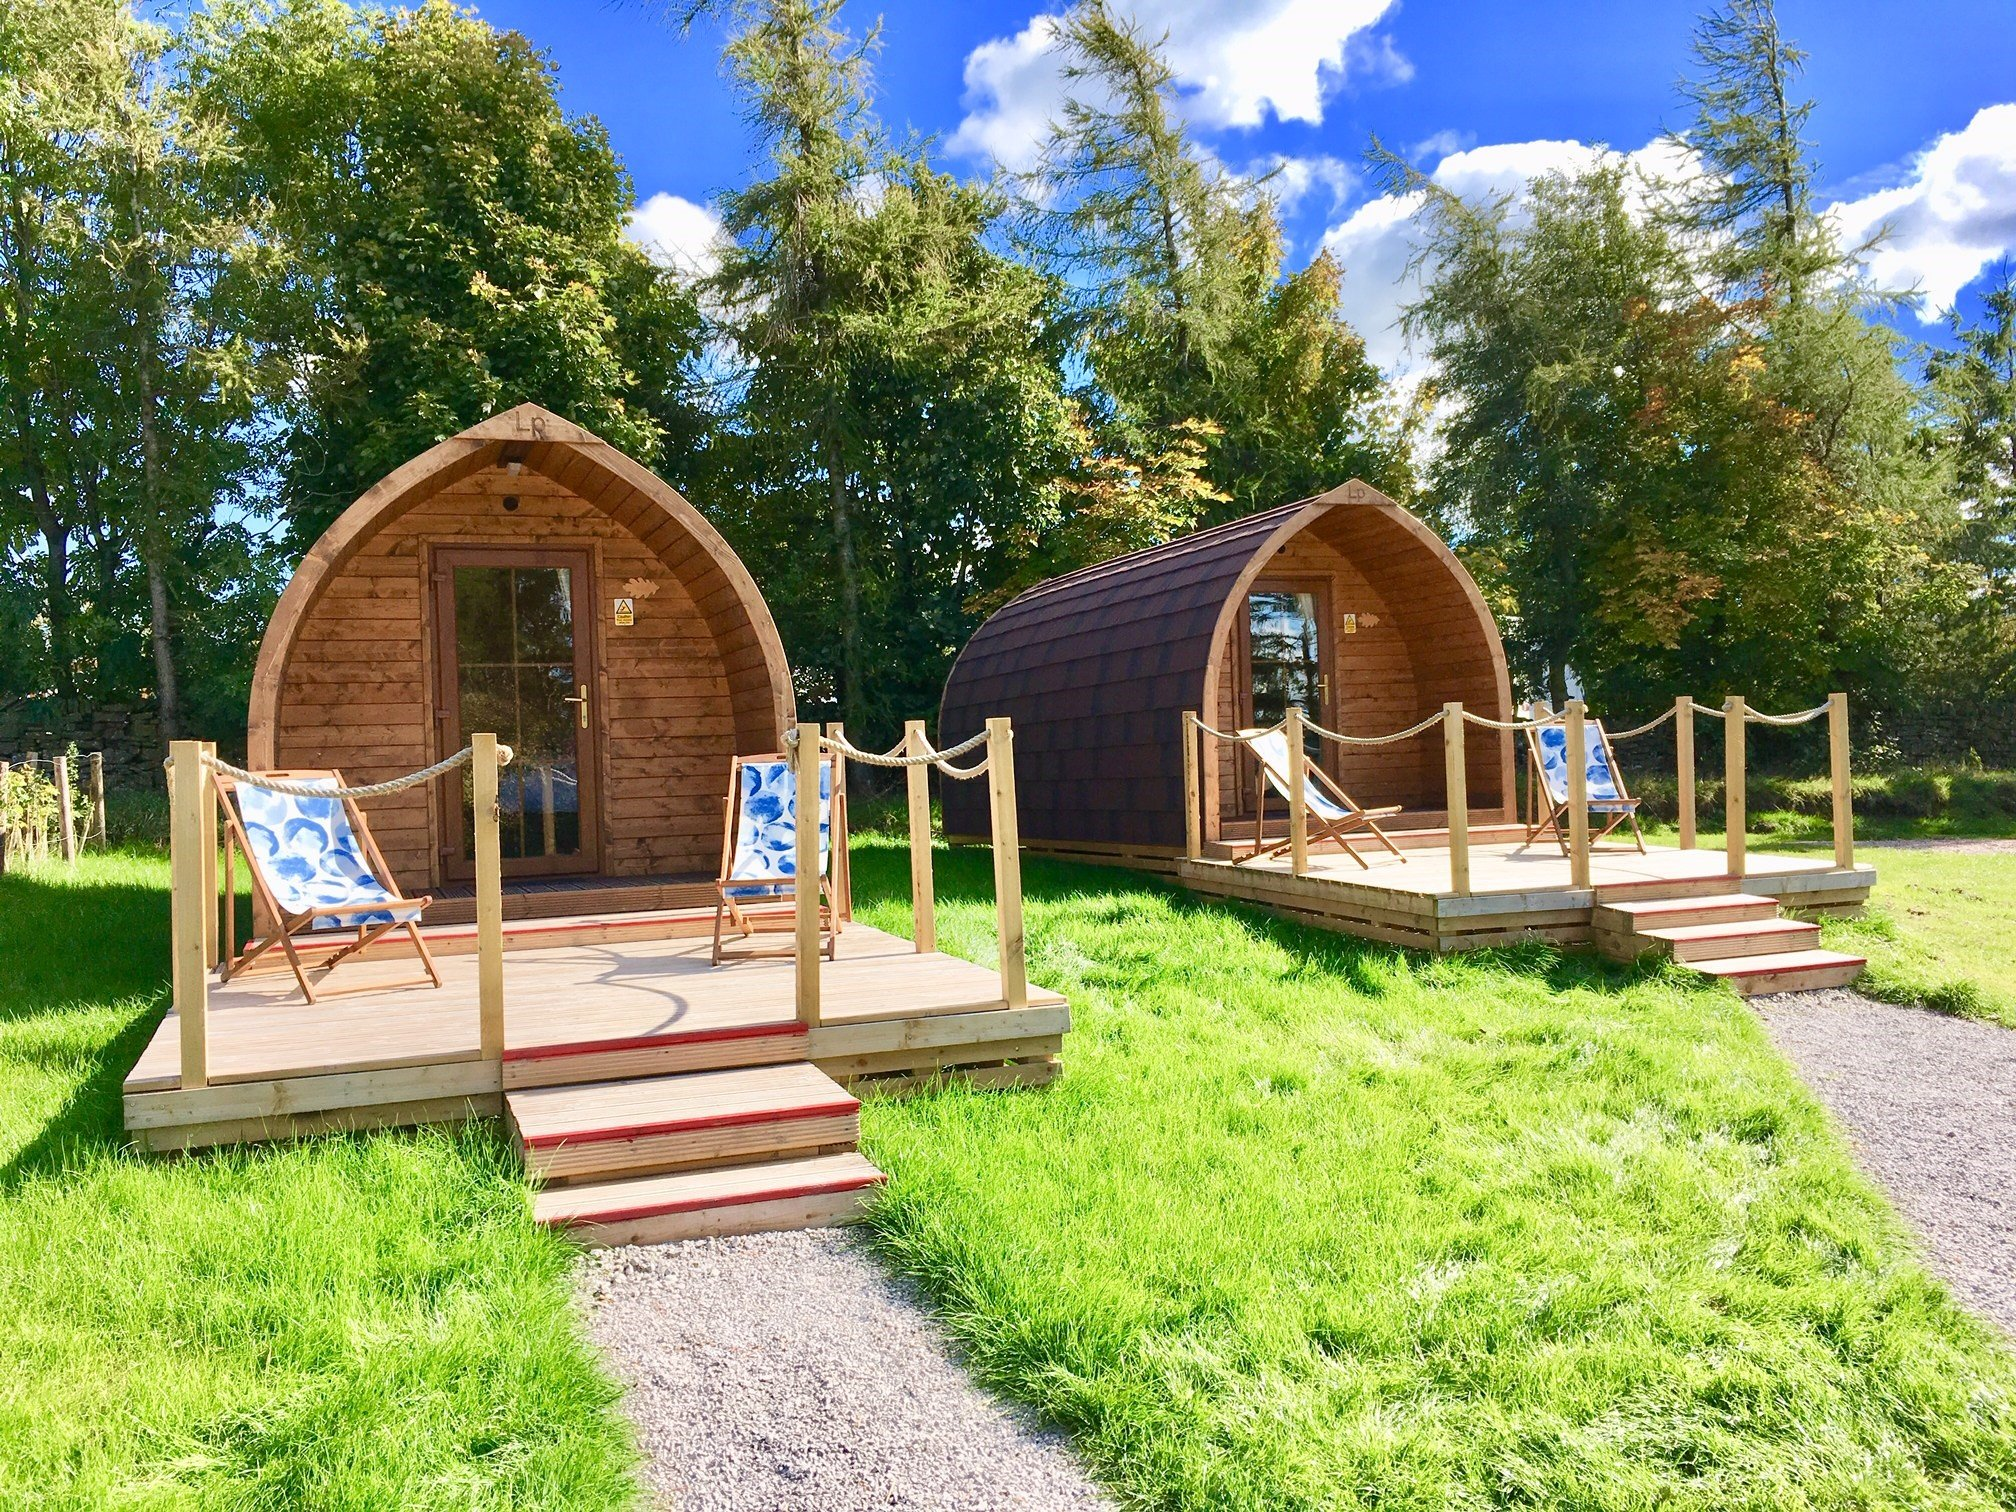 Camping Pods in the Peak District, situated at Longnor Wood